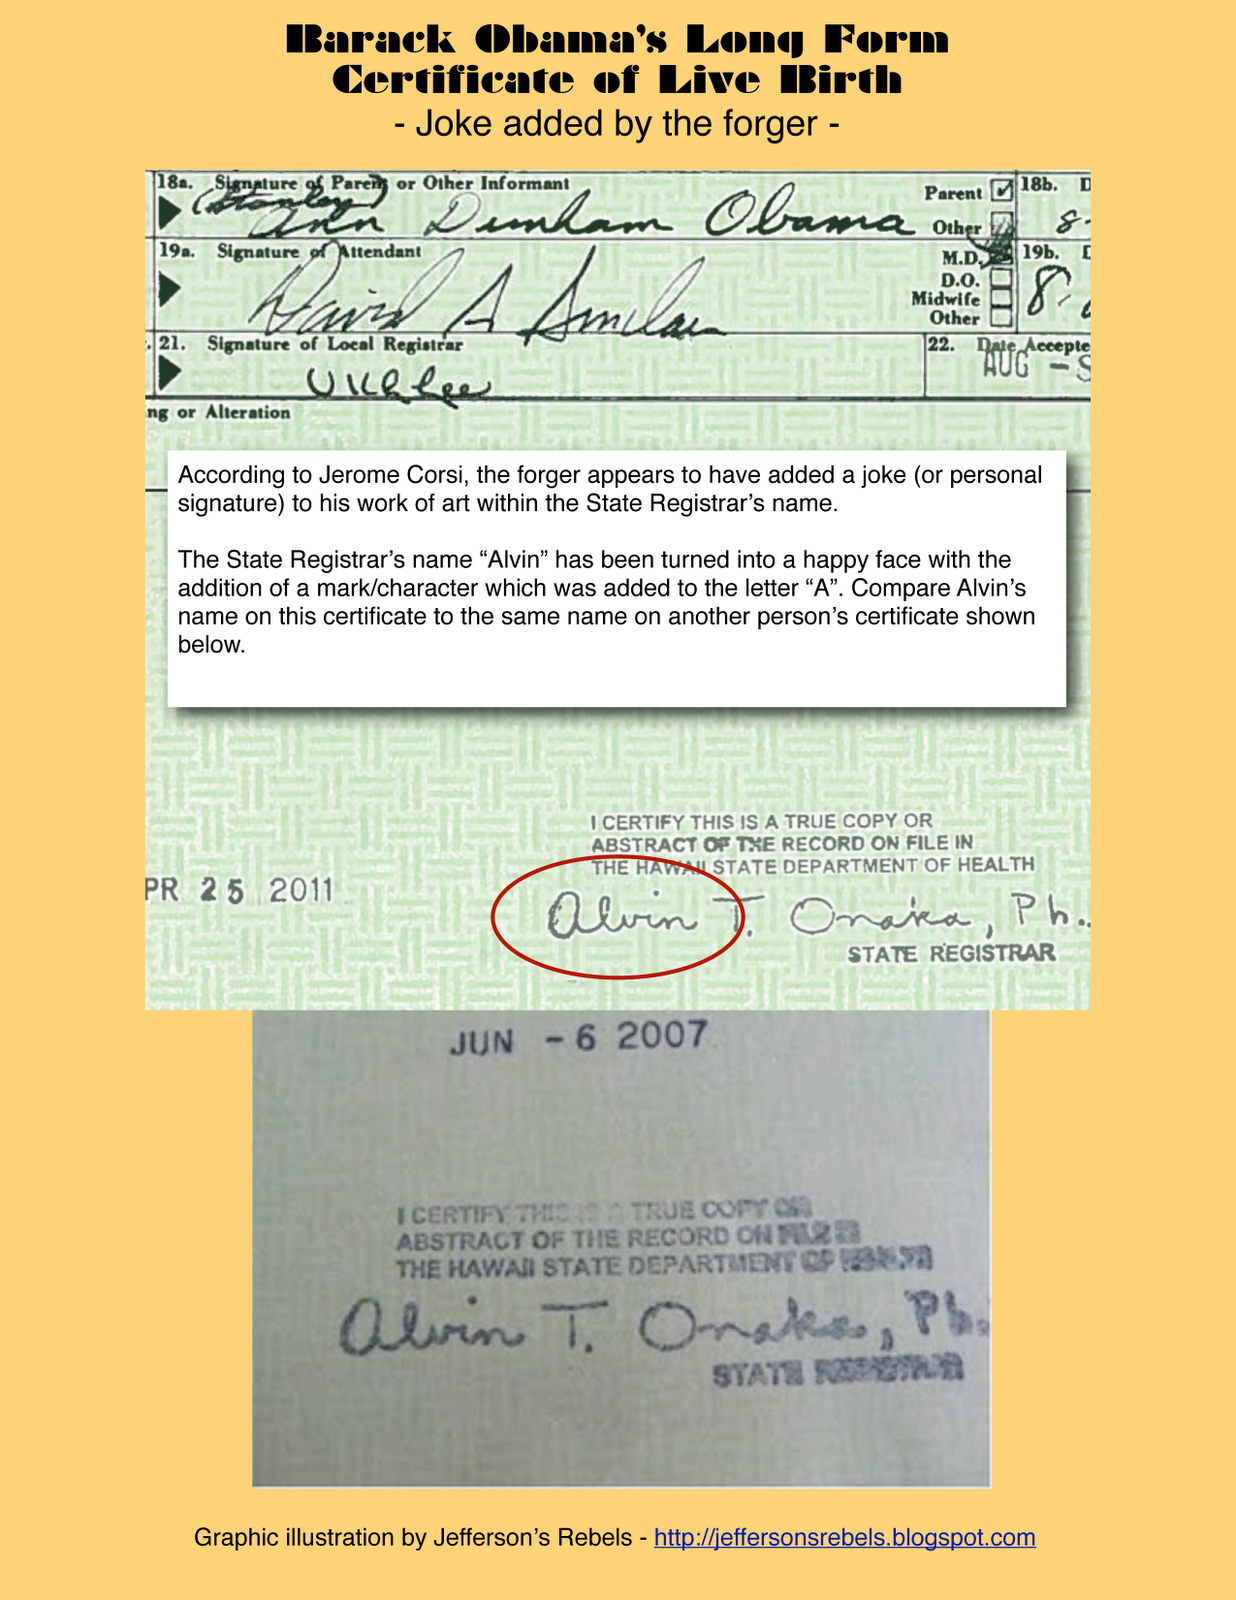 Jeffersons rebels may 2011 graphic joke added by the forger to obamas birth certificate aiddatafo Images